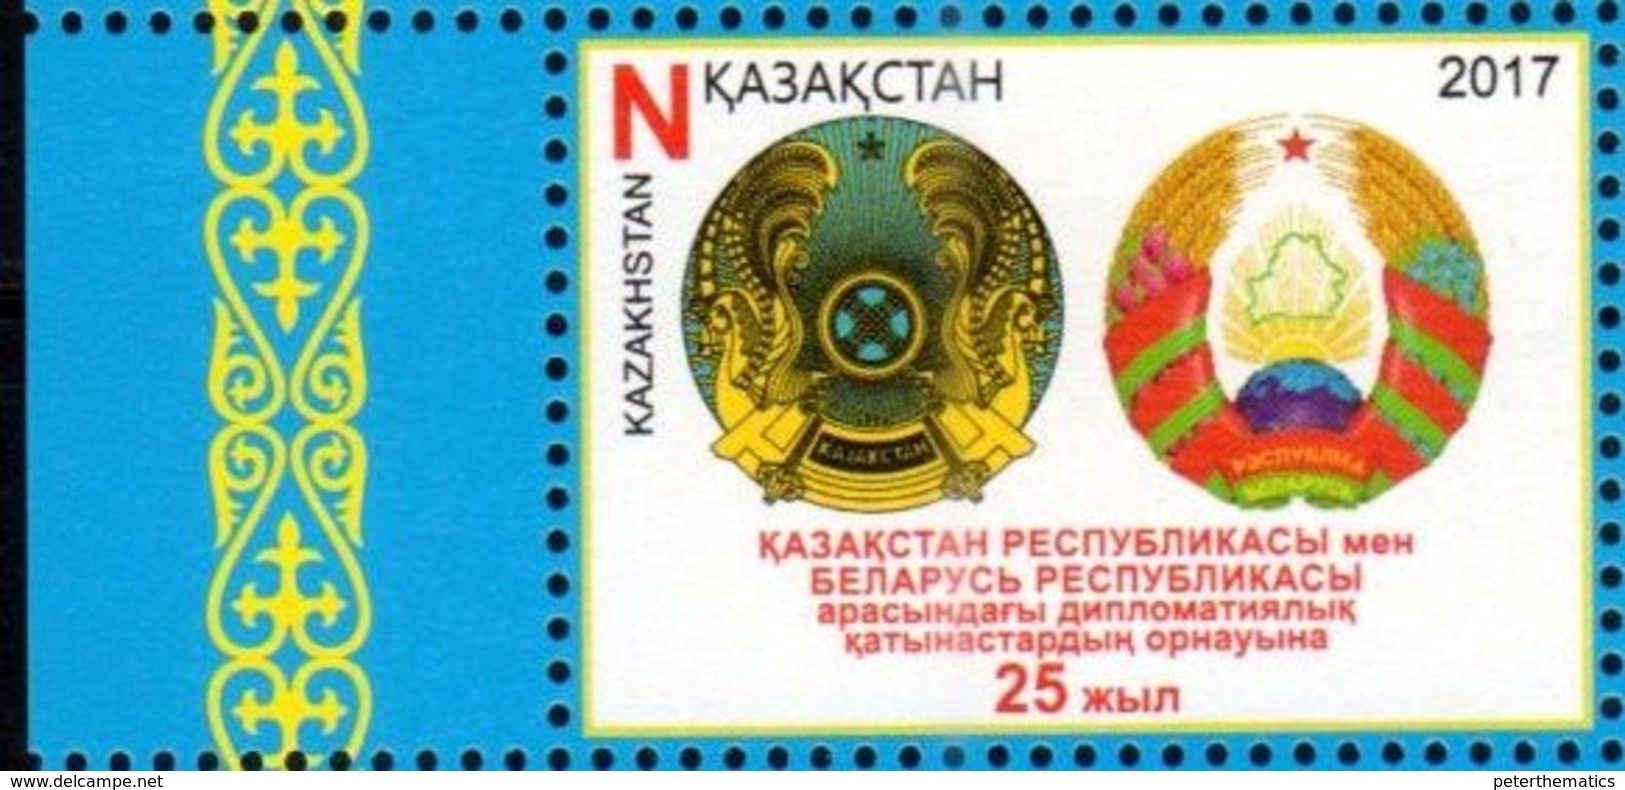 KAZAKHSTAN , 2017, MNH, JOINT ISSUE WITH BELARUS, DIPLOMATIC RELATIONS WITH BEALRUS, 1v - Joint Issues